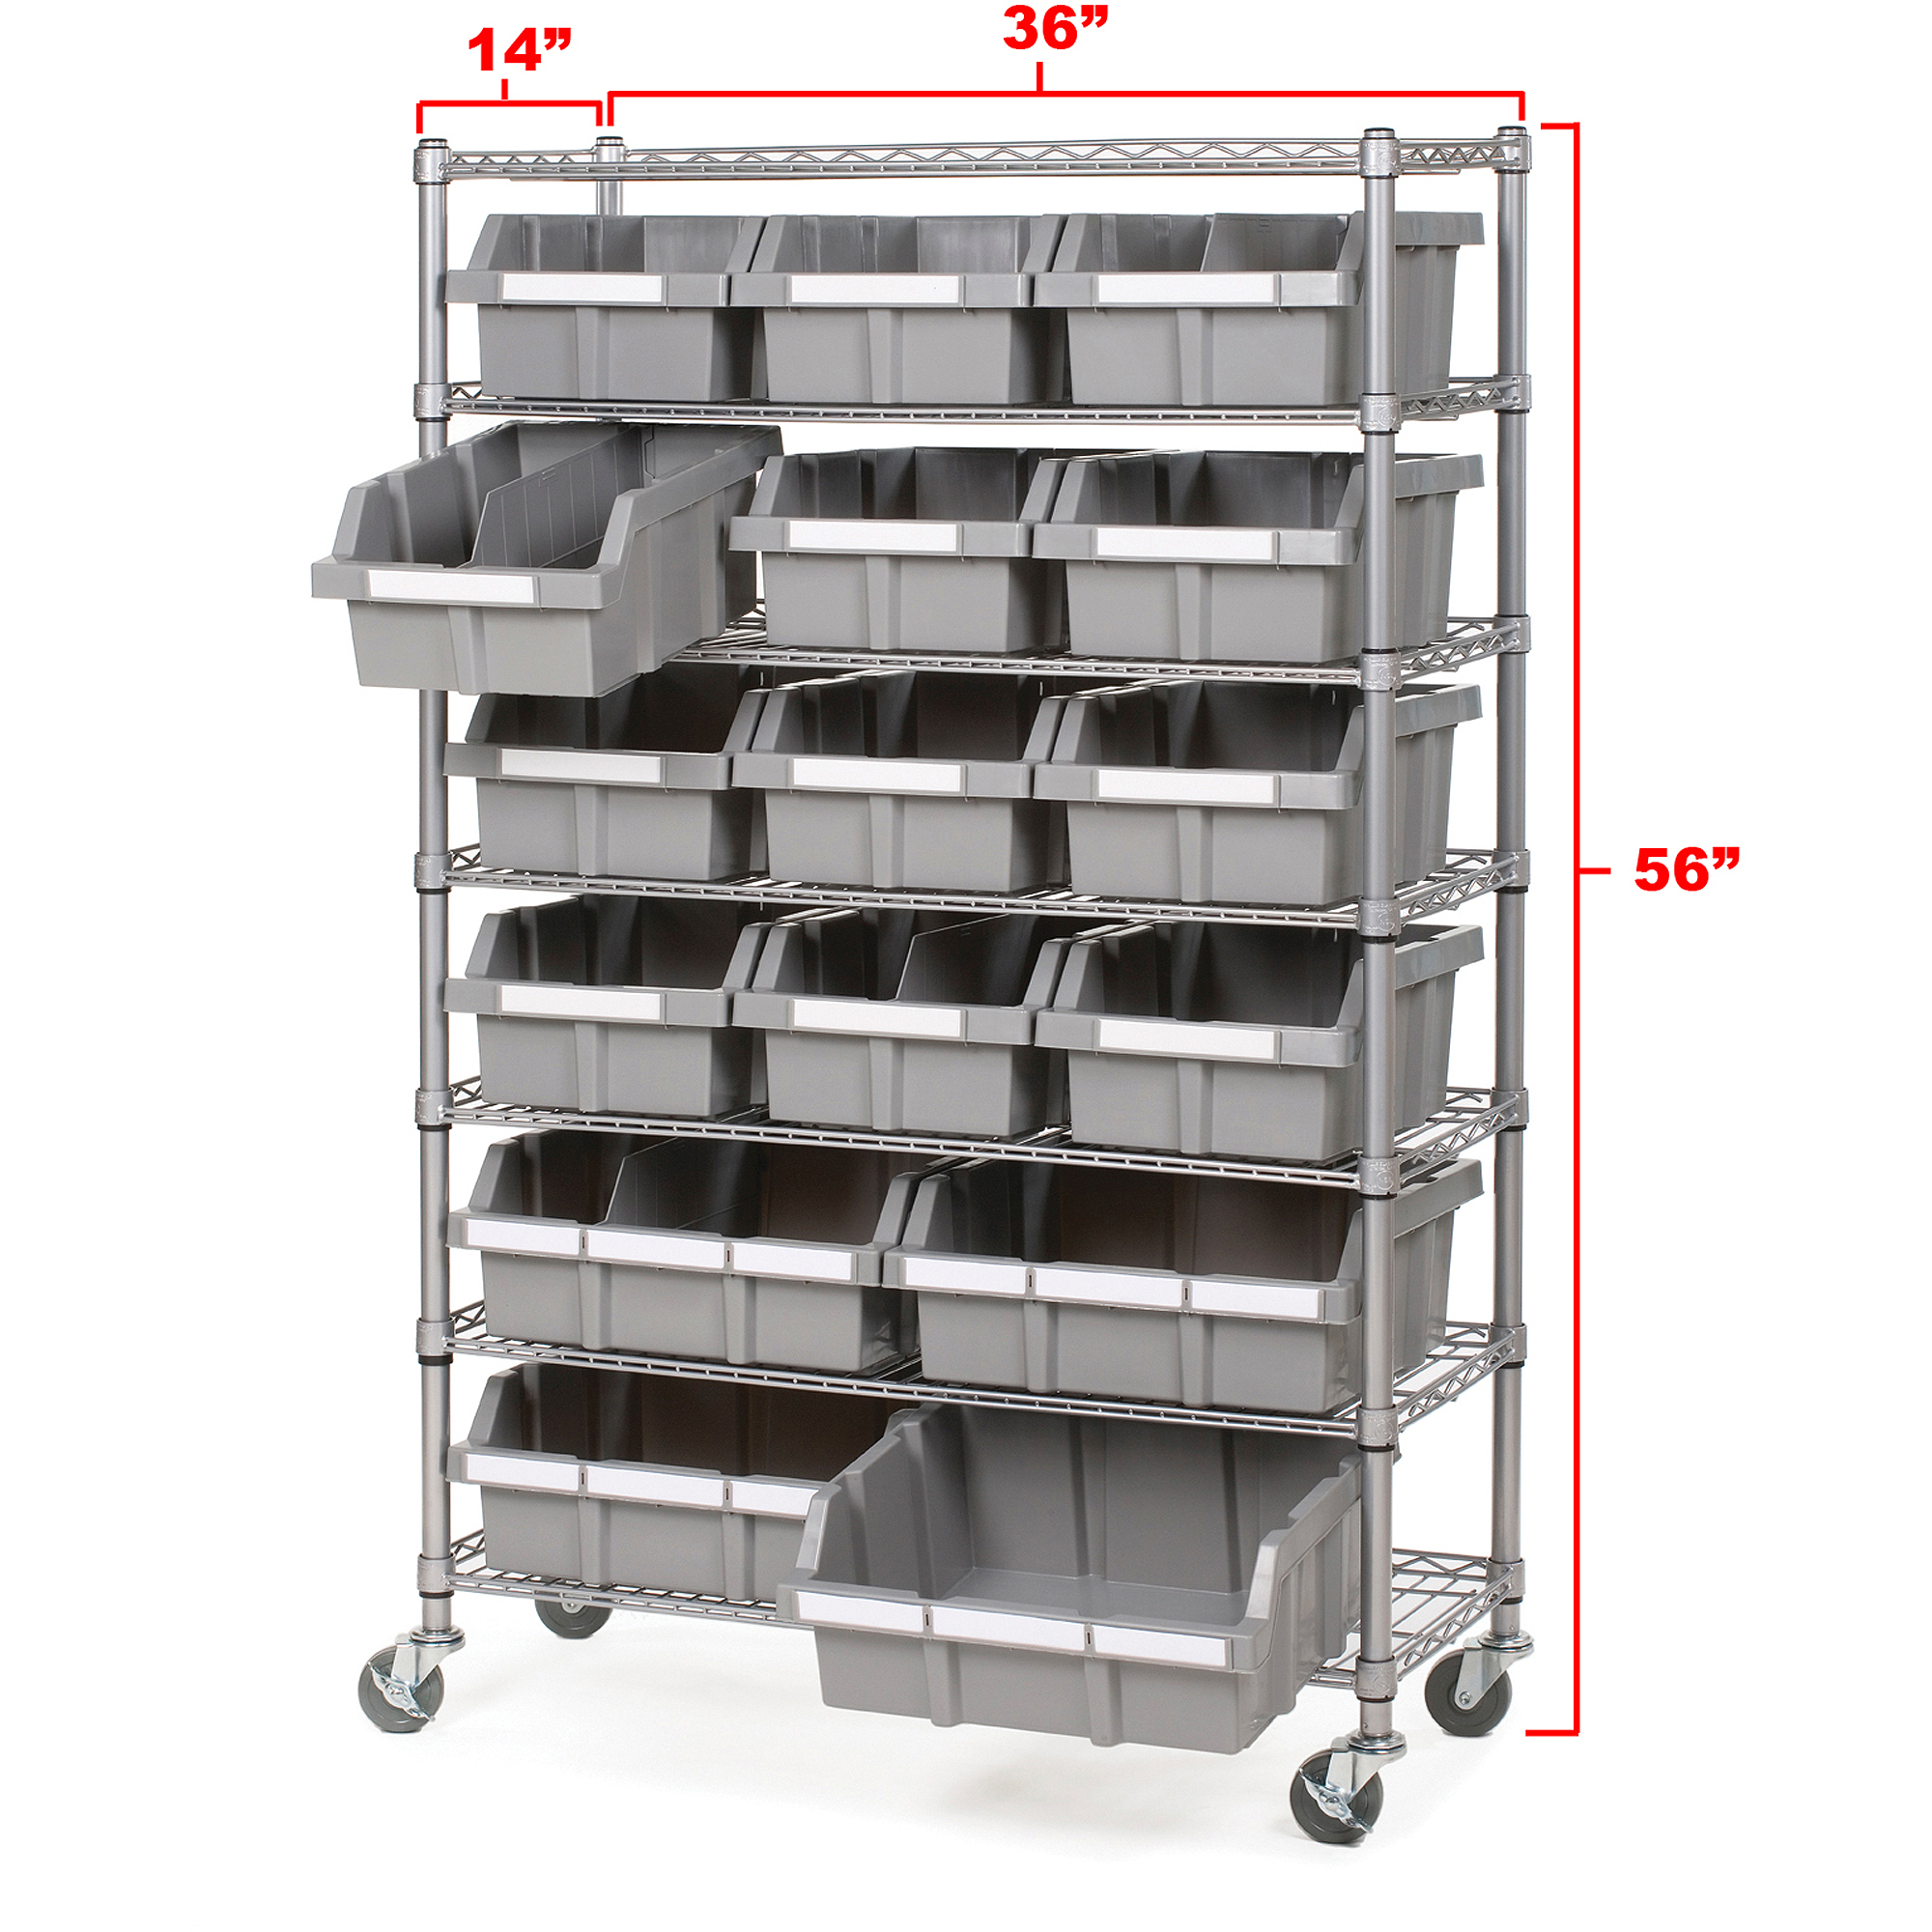 Seville Classics Commercial 7-Shelf 16-Bin Rack, SHE16510BX